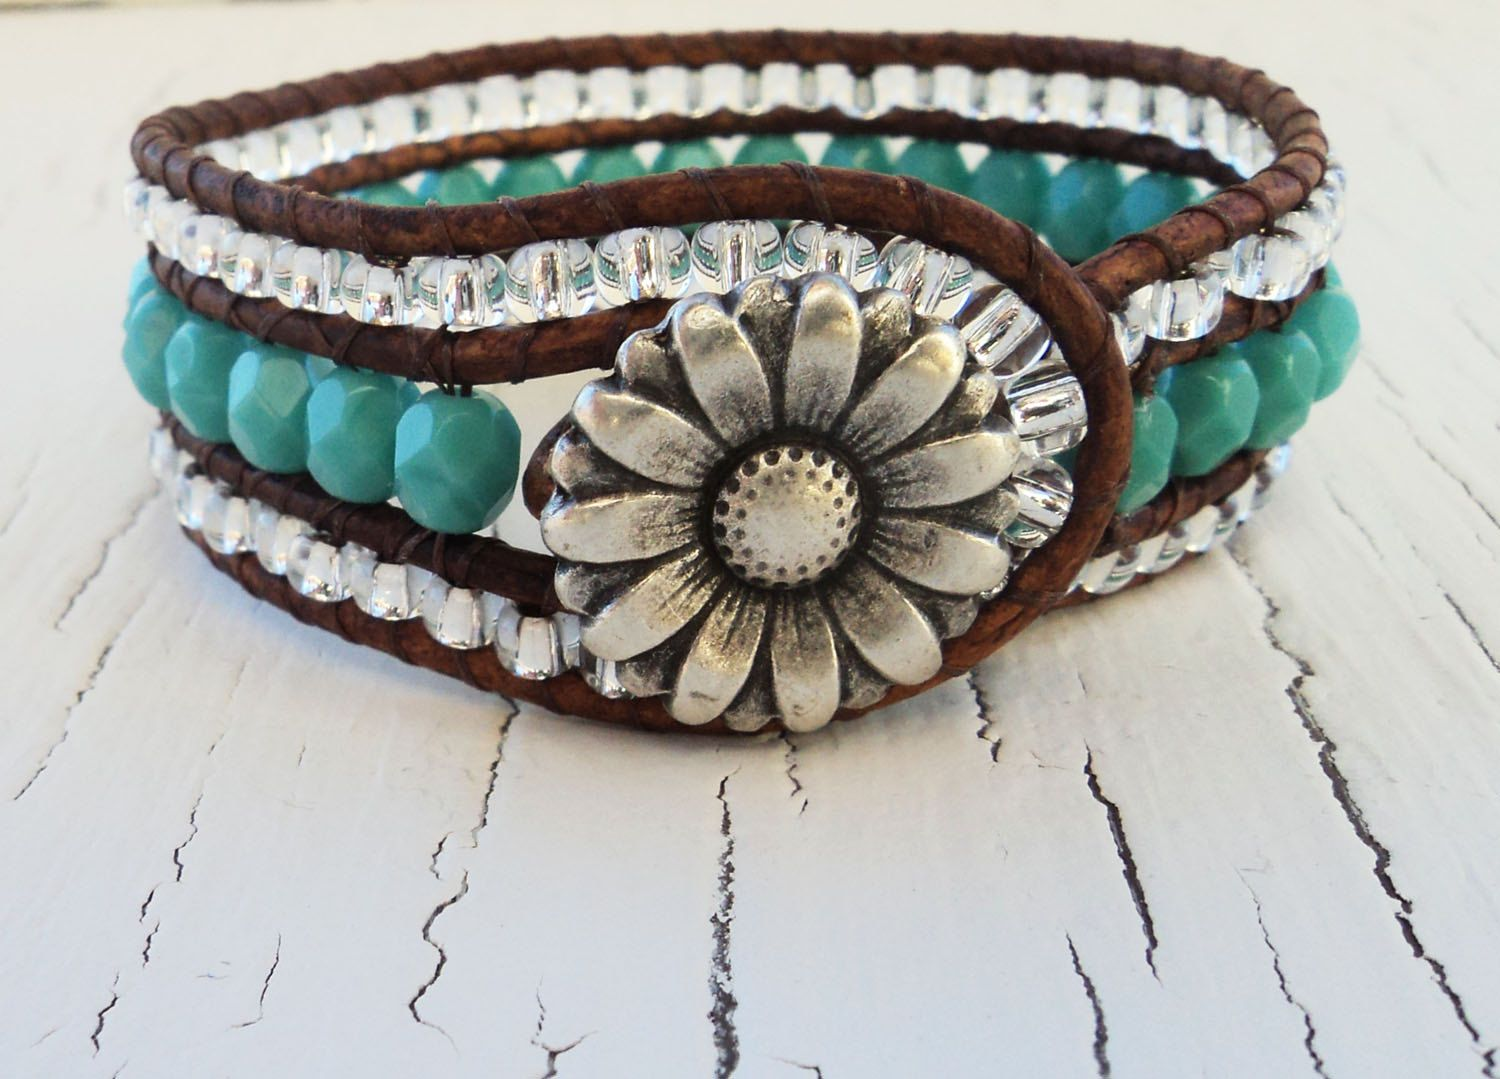 Explore Beaded Wrap Bracelets And More!